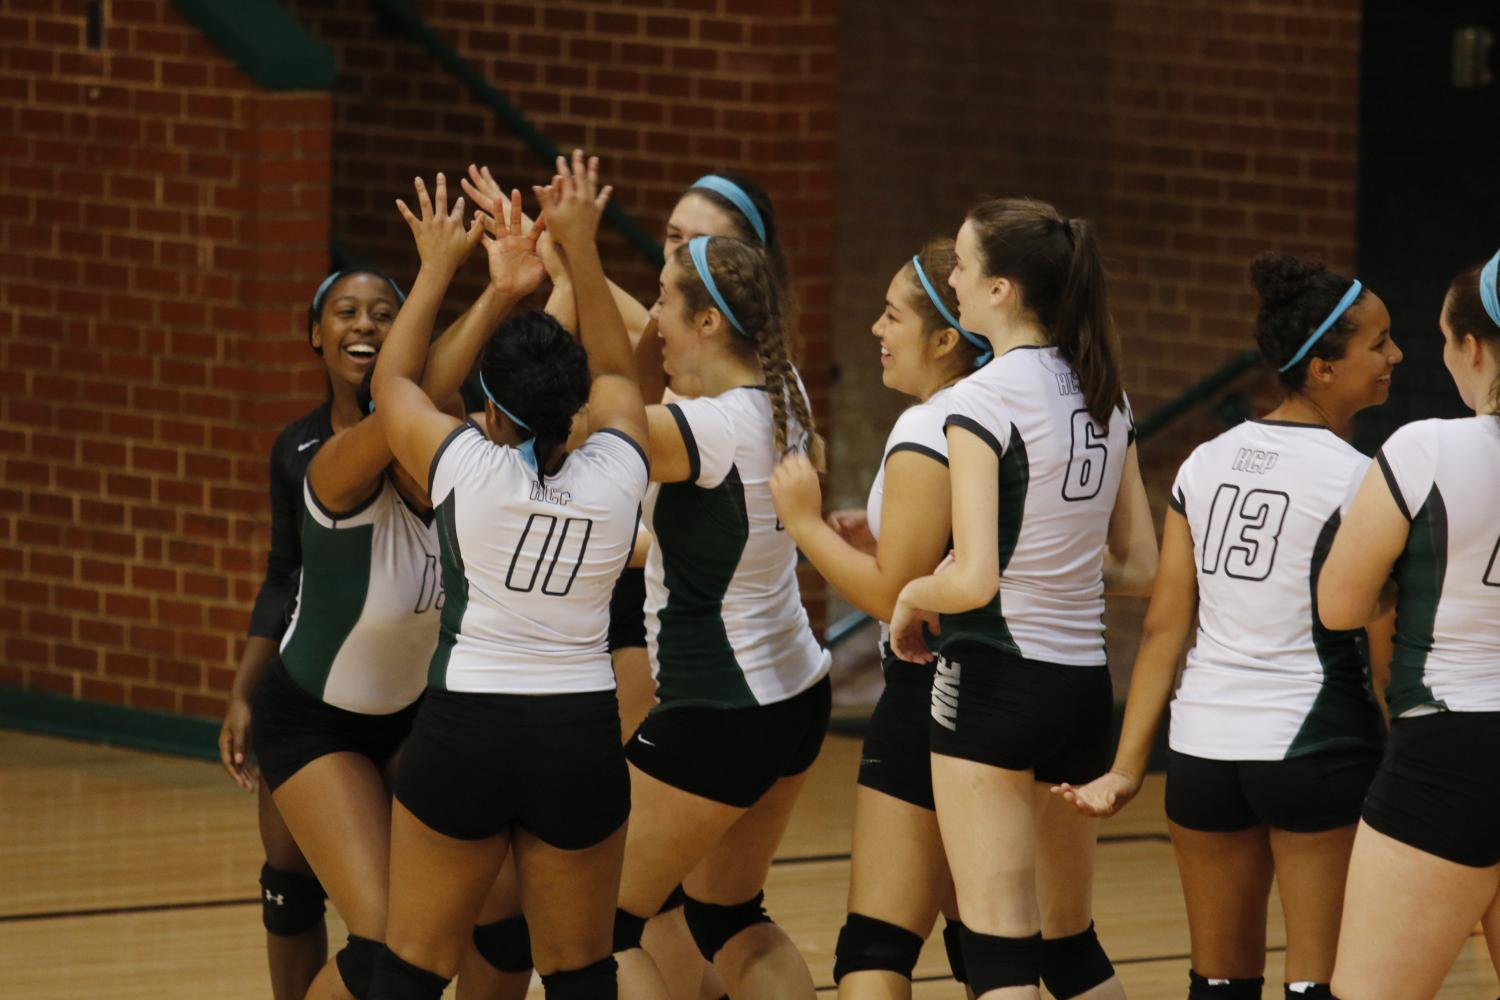 Volleyball+team+comes+together+to+high+five+each+other+after+a+play.+